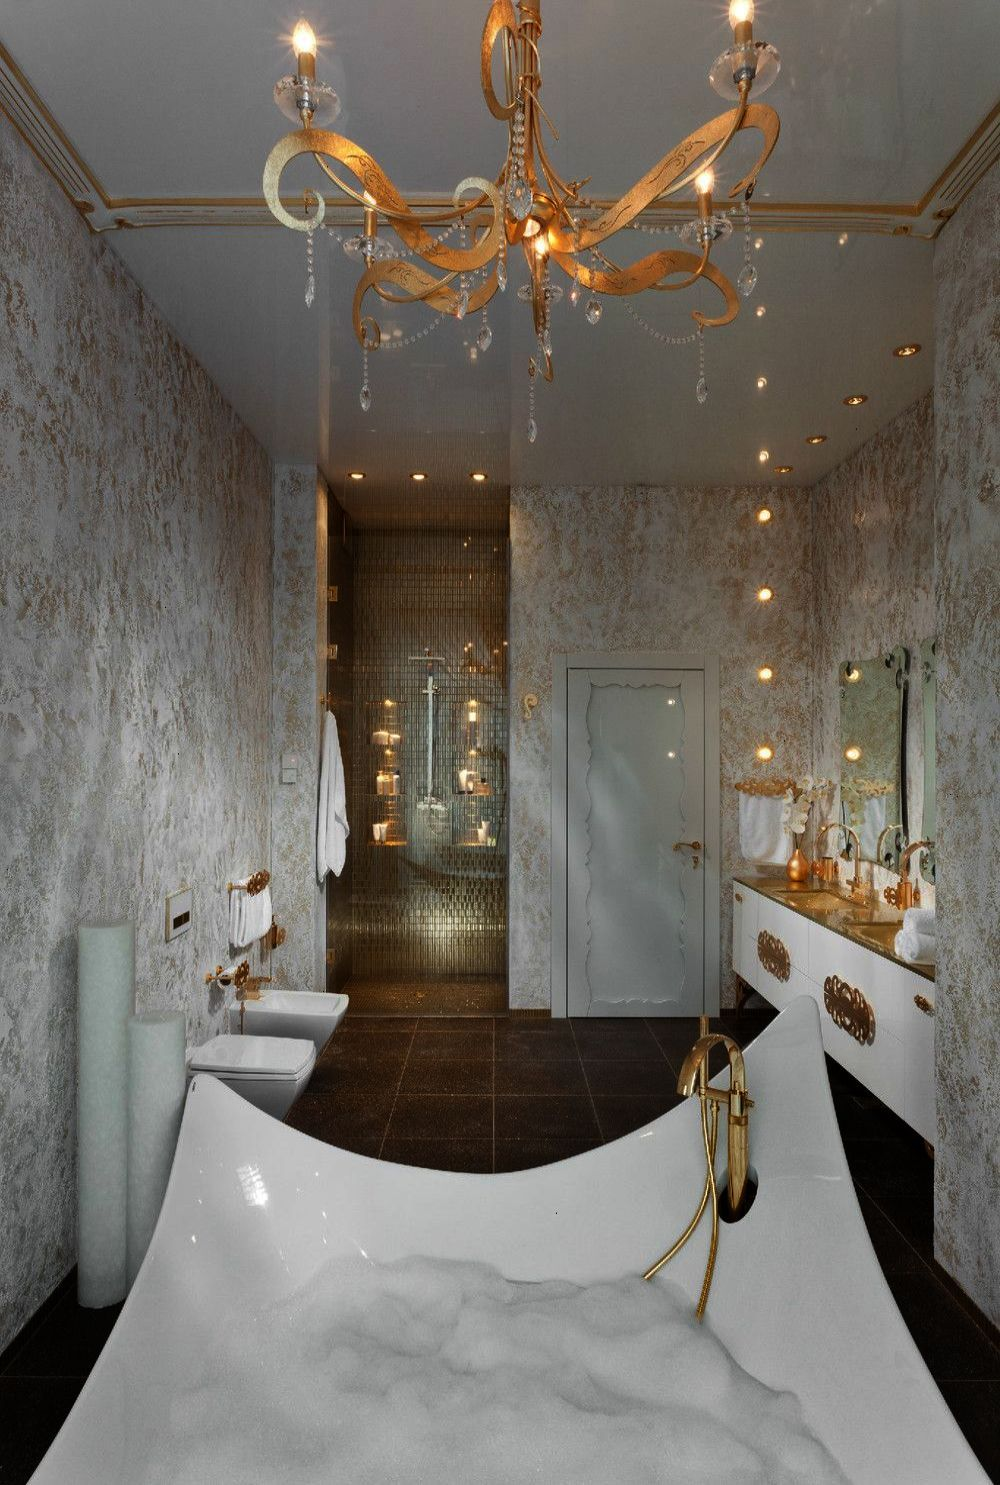 These could be eight of the most luxurious bathrooms we